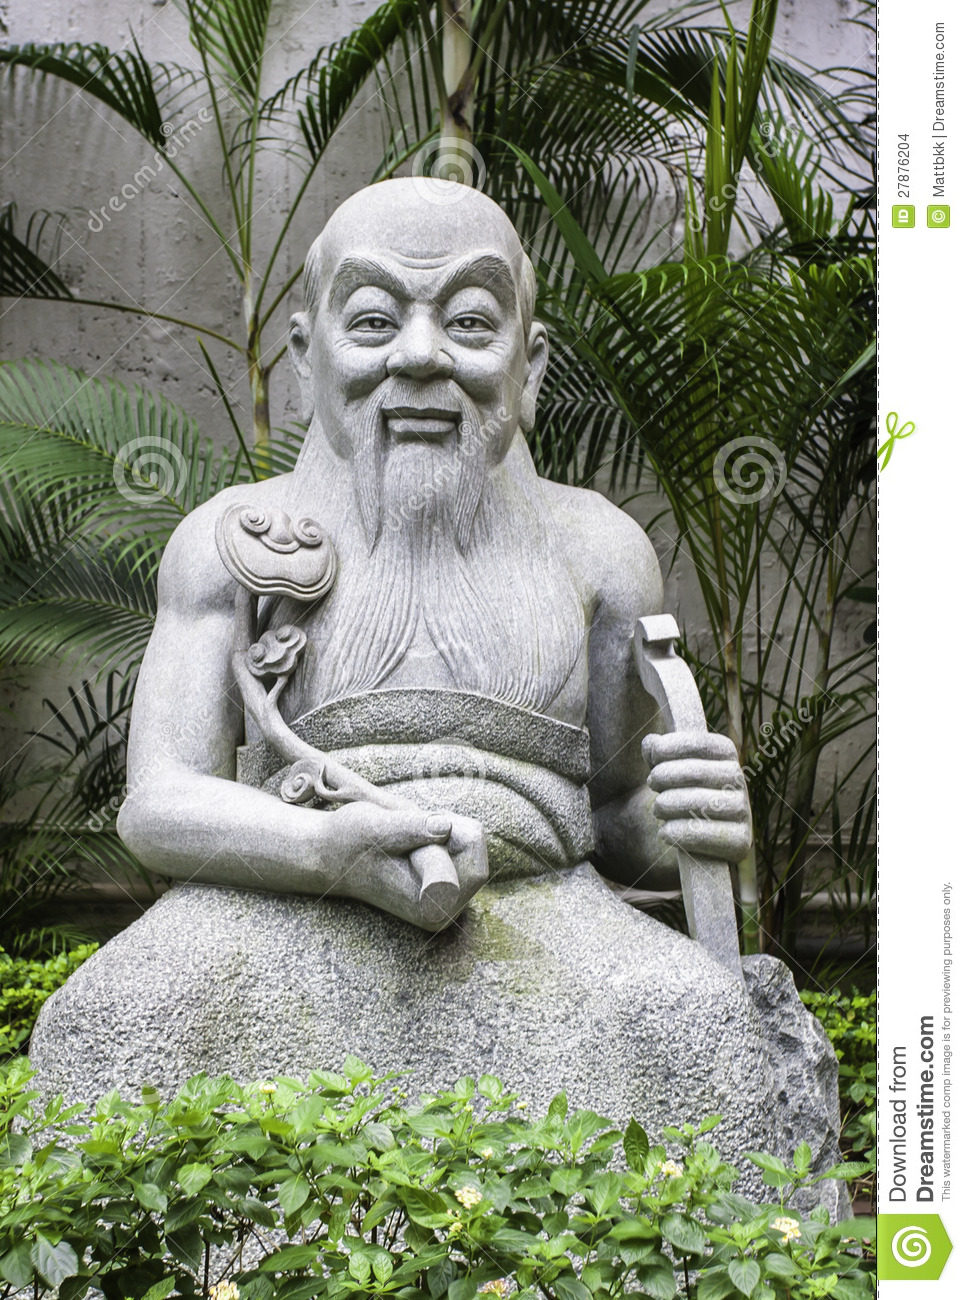 Old Garden Statue: Statue Of Old Chinese Man In Garden, Hong Kong Stock Photo